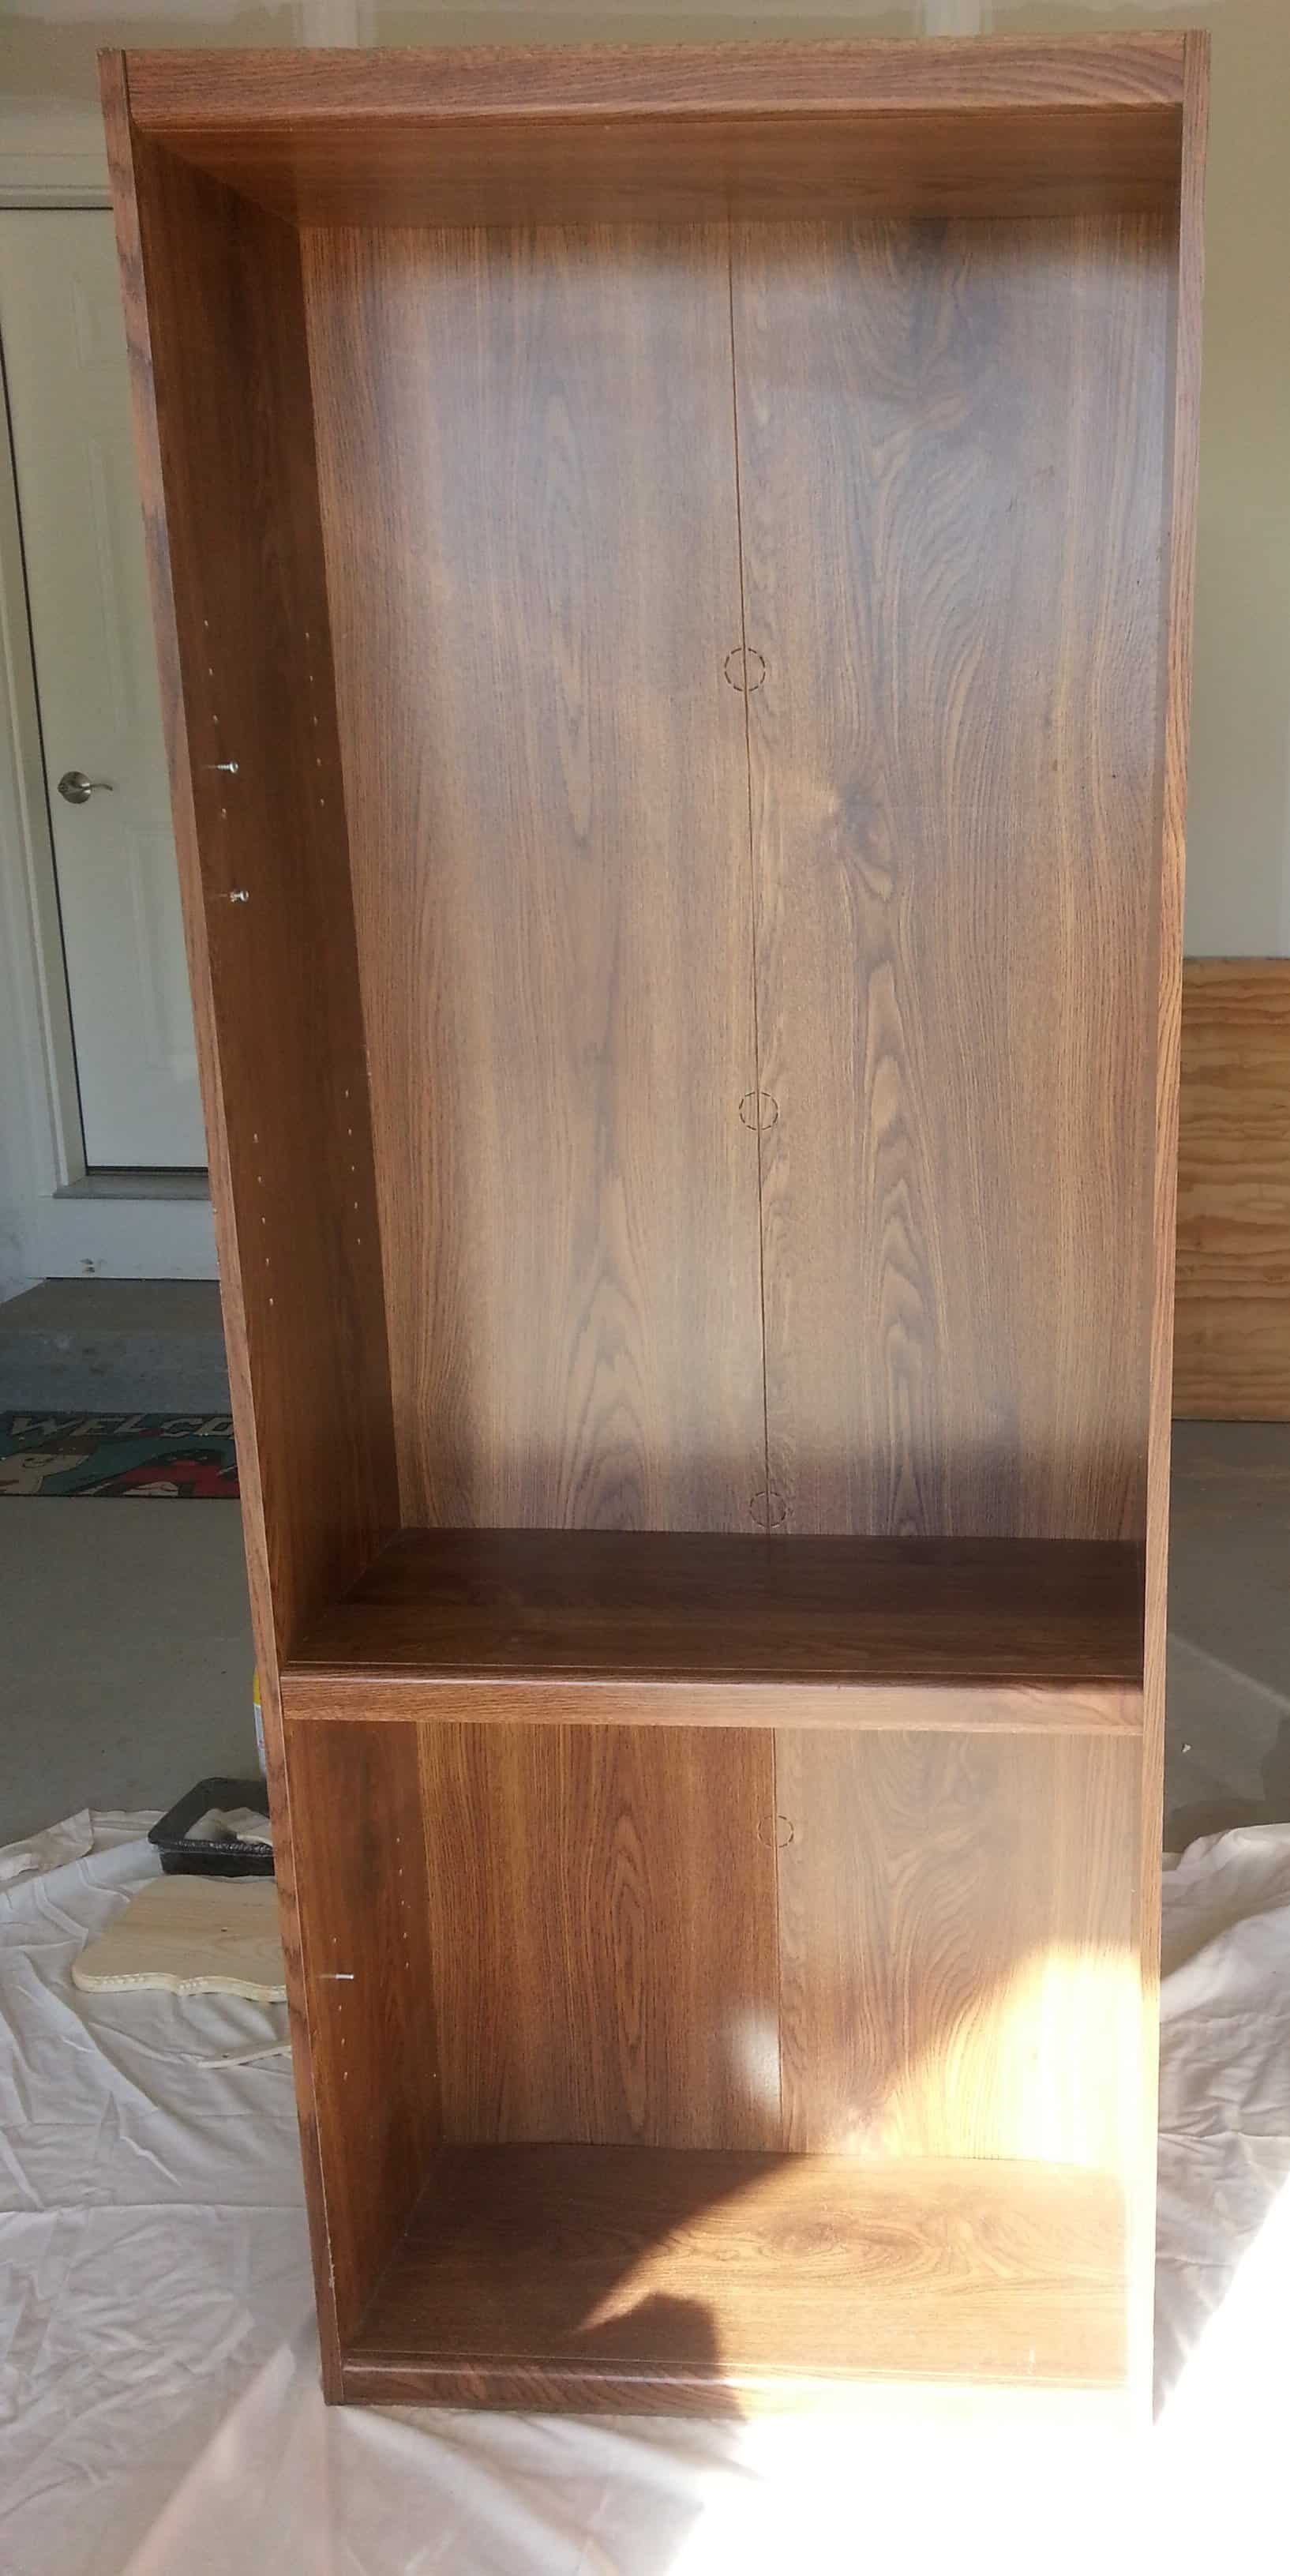 Can You Paint Laminate Furniture #35: Bookshelf Before. This Is A Laminate Bookcase And YES You Can Paint Laminate Furniture.